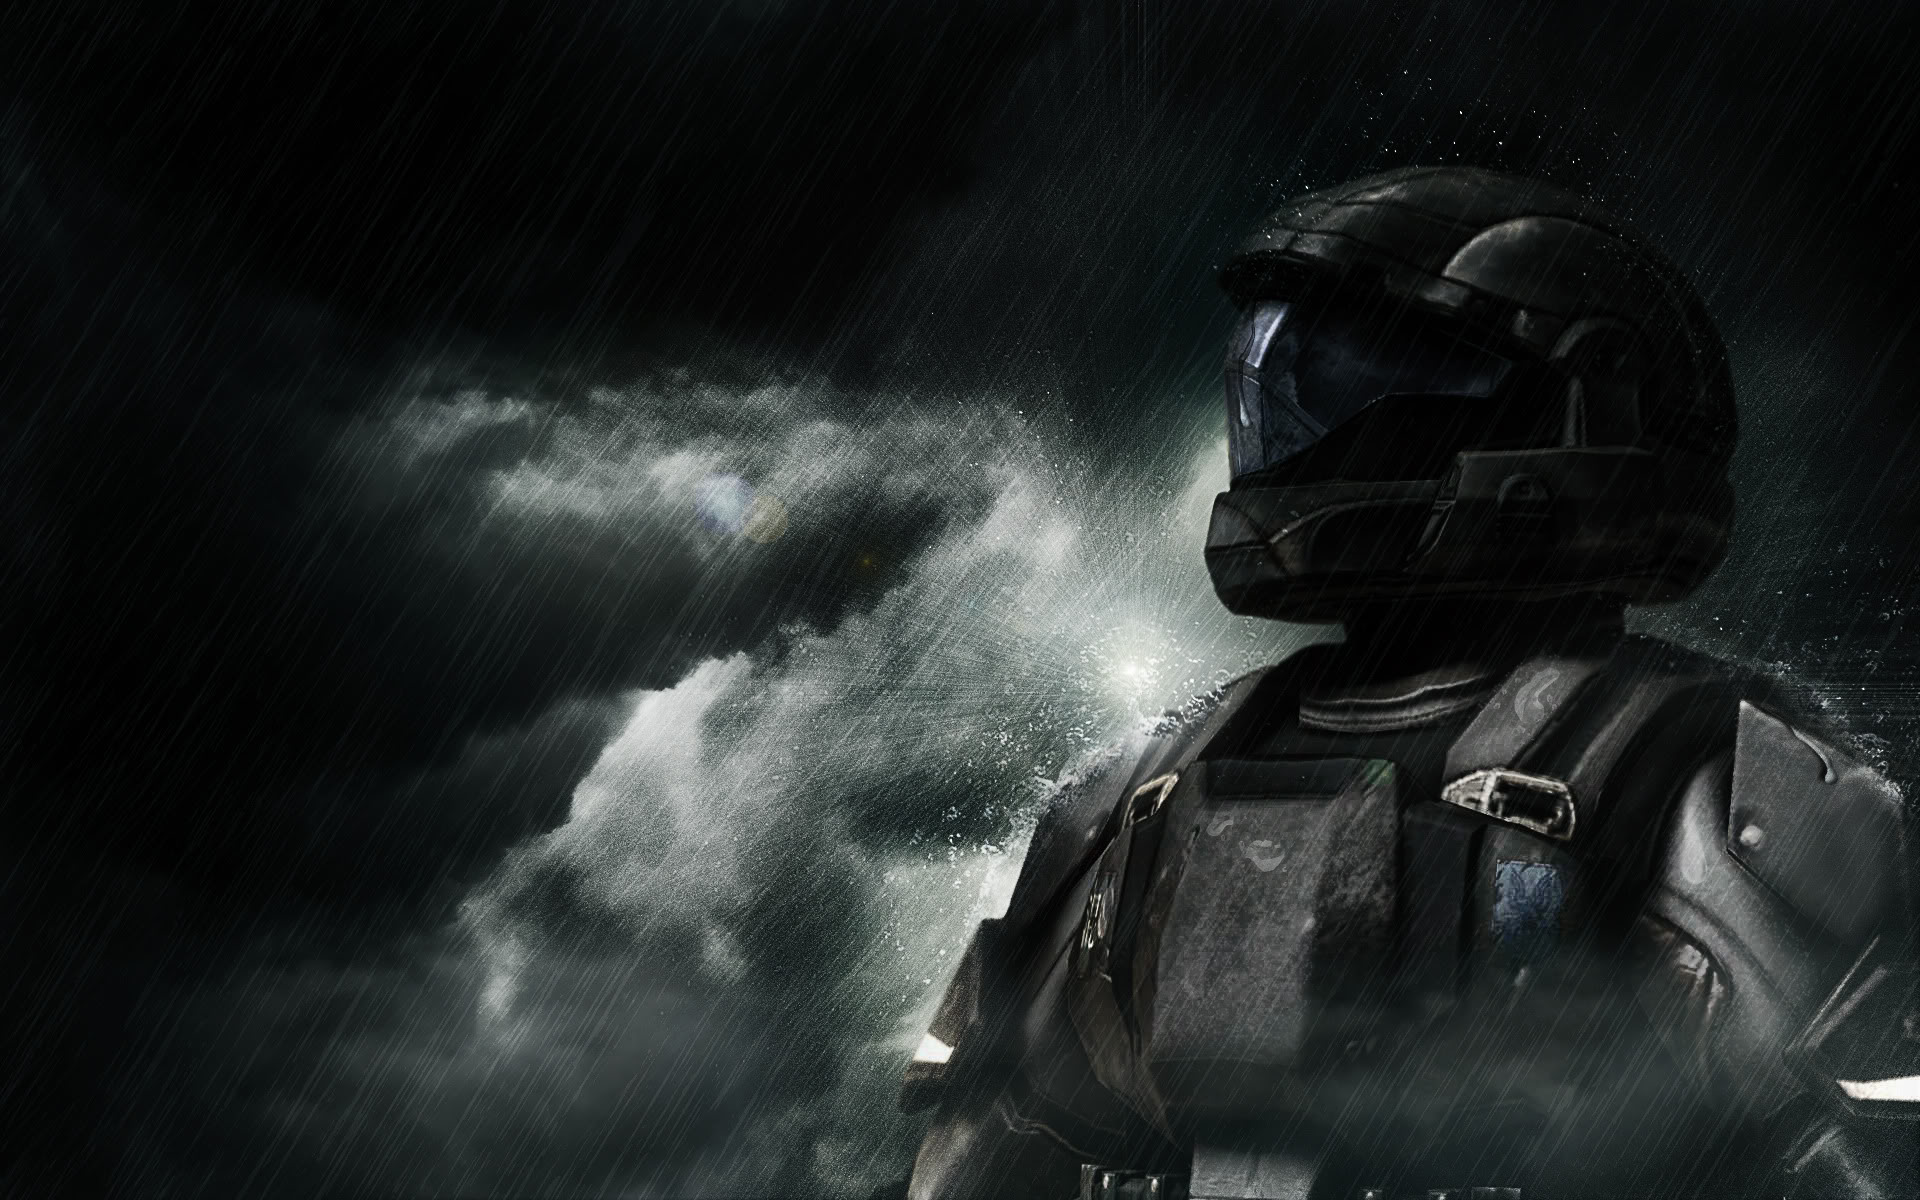 Halo odst wallpapers halo odst stock photos - Halo 5 screensaver ...